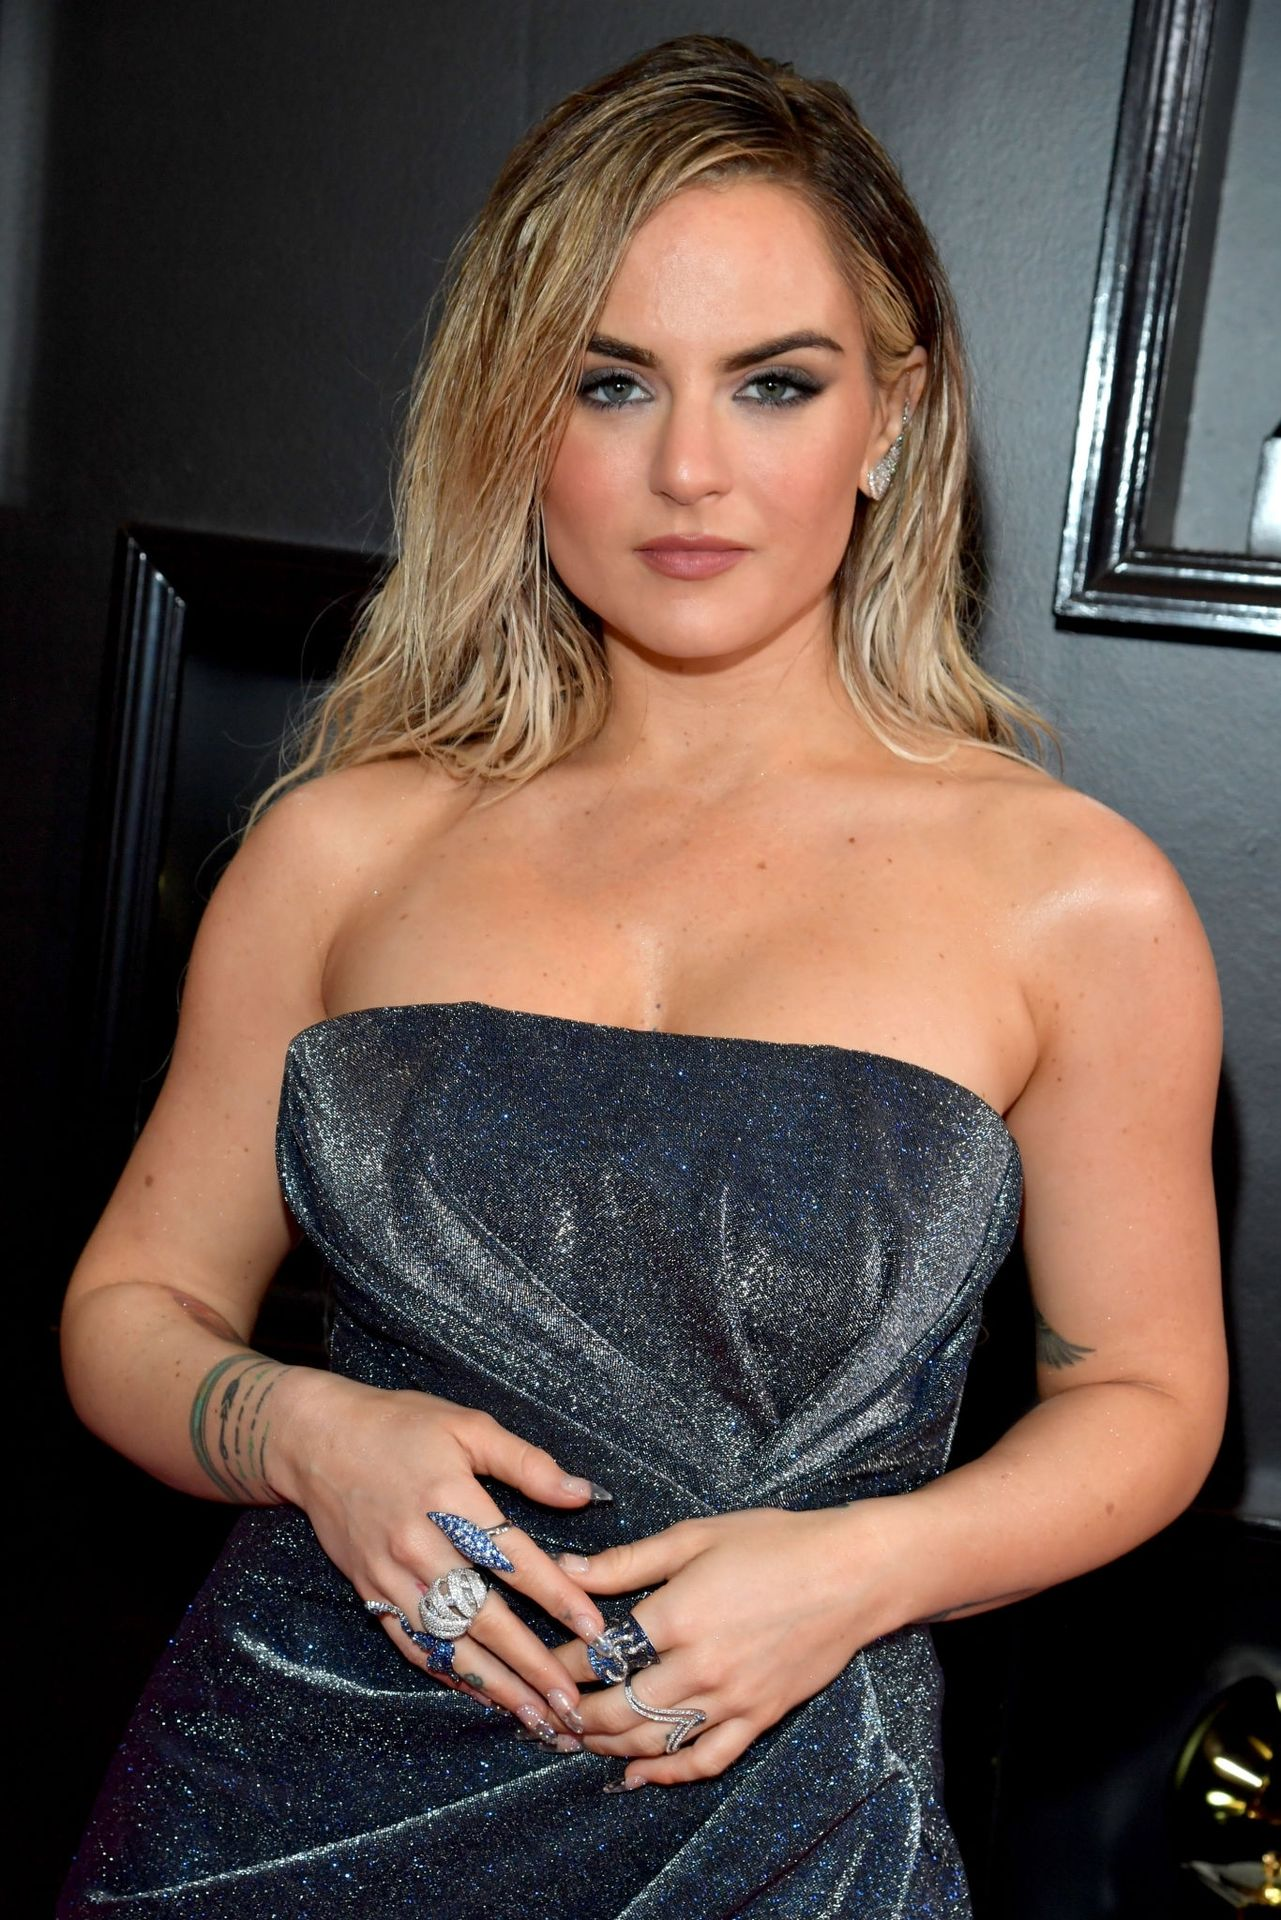 Jojo Shows Her Legs And Cleavage At The 62nd Annual Grammy Awards 0009